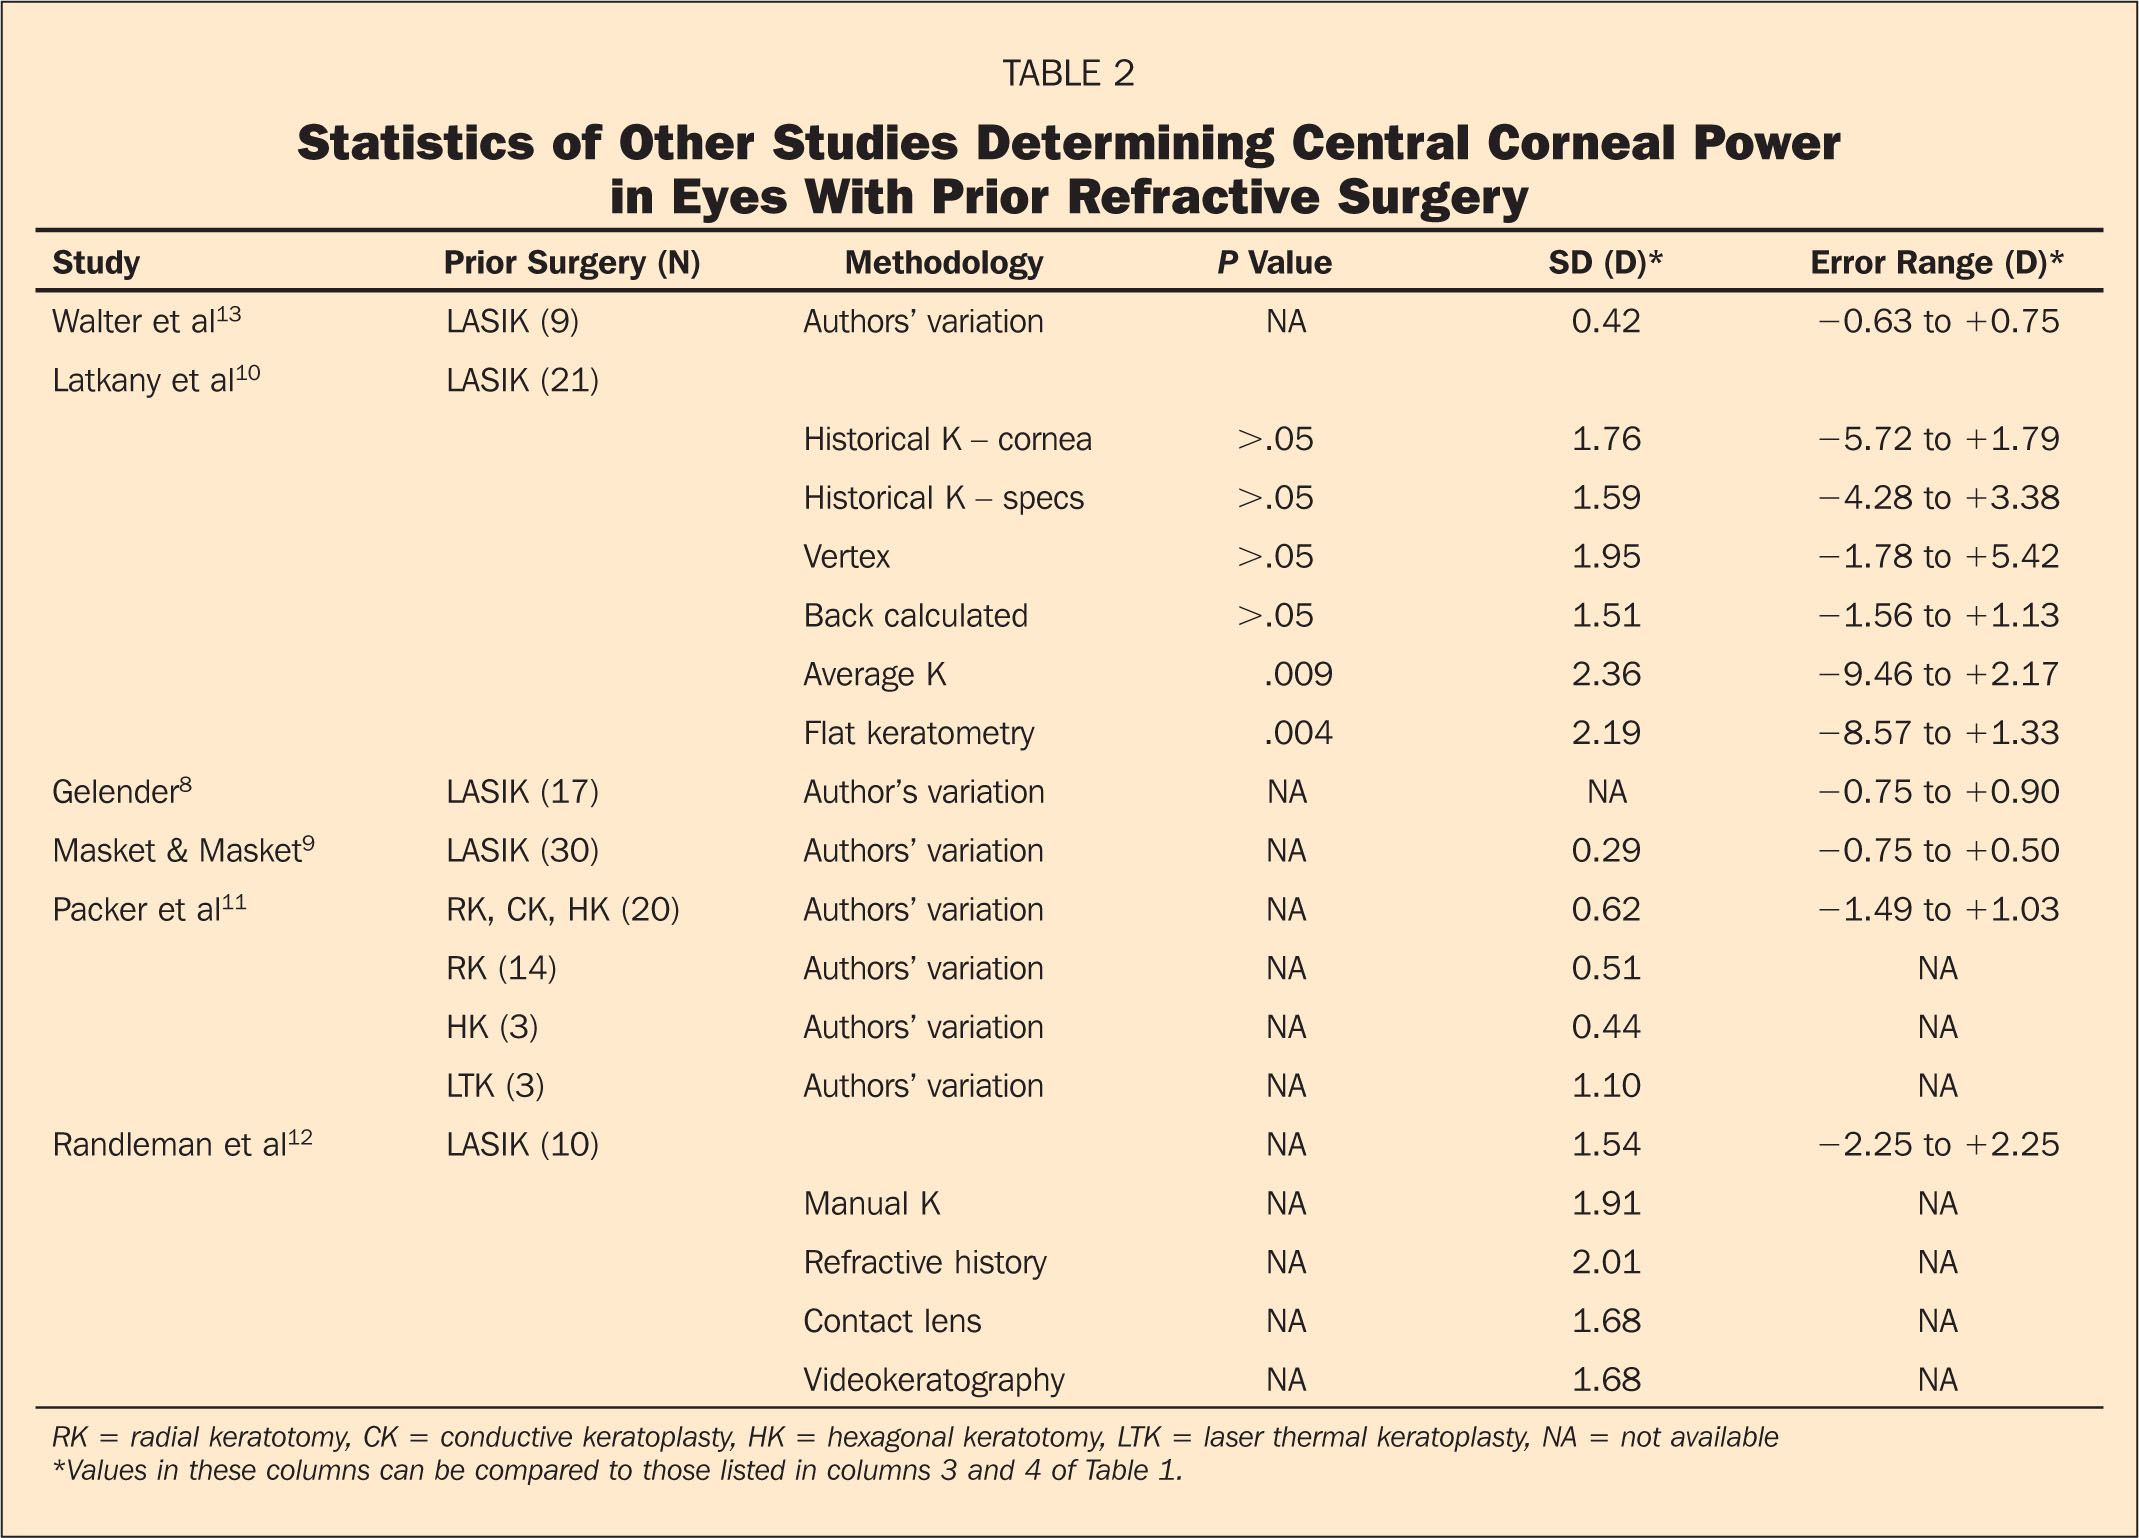 Statistics of Other Studies Determining Central Corneal Power in Eyes with Prior Refractive Surgery